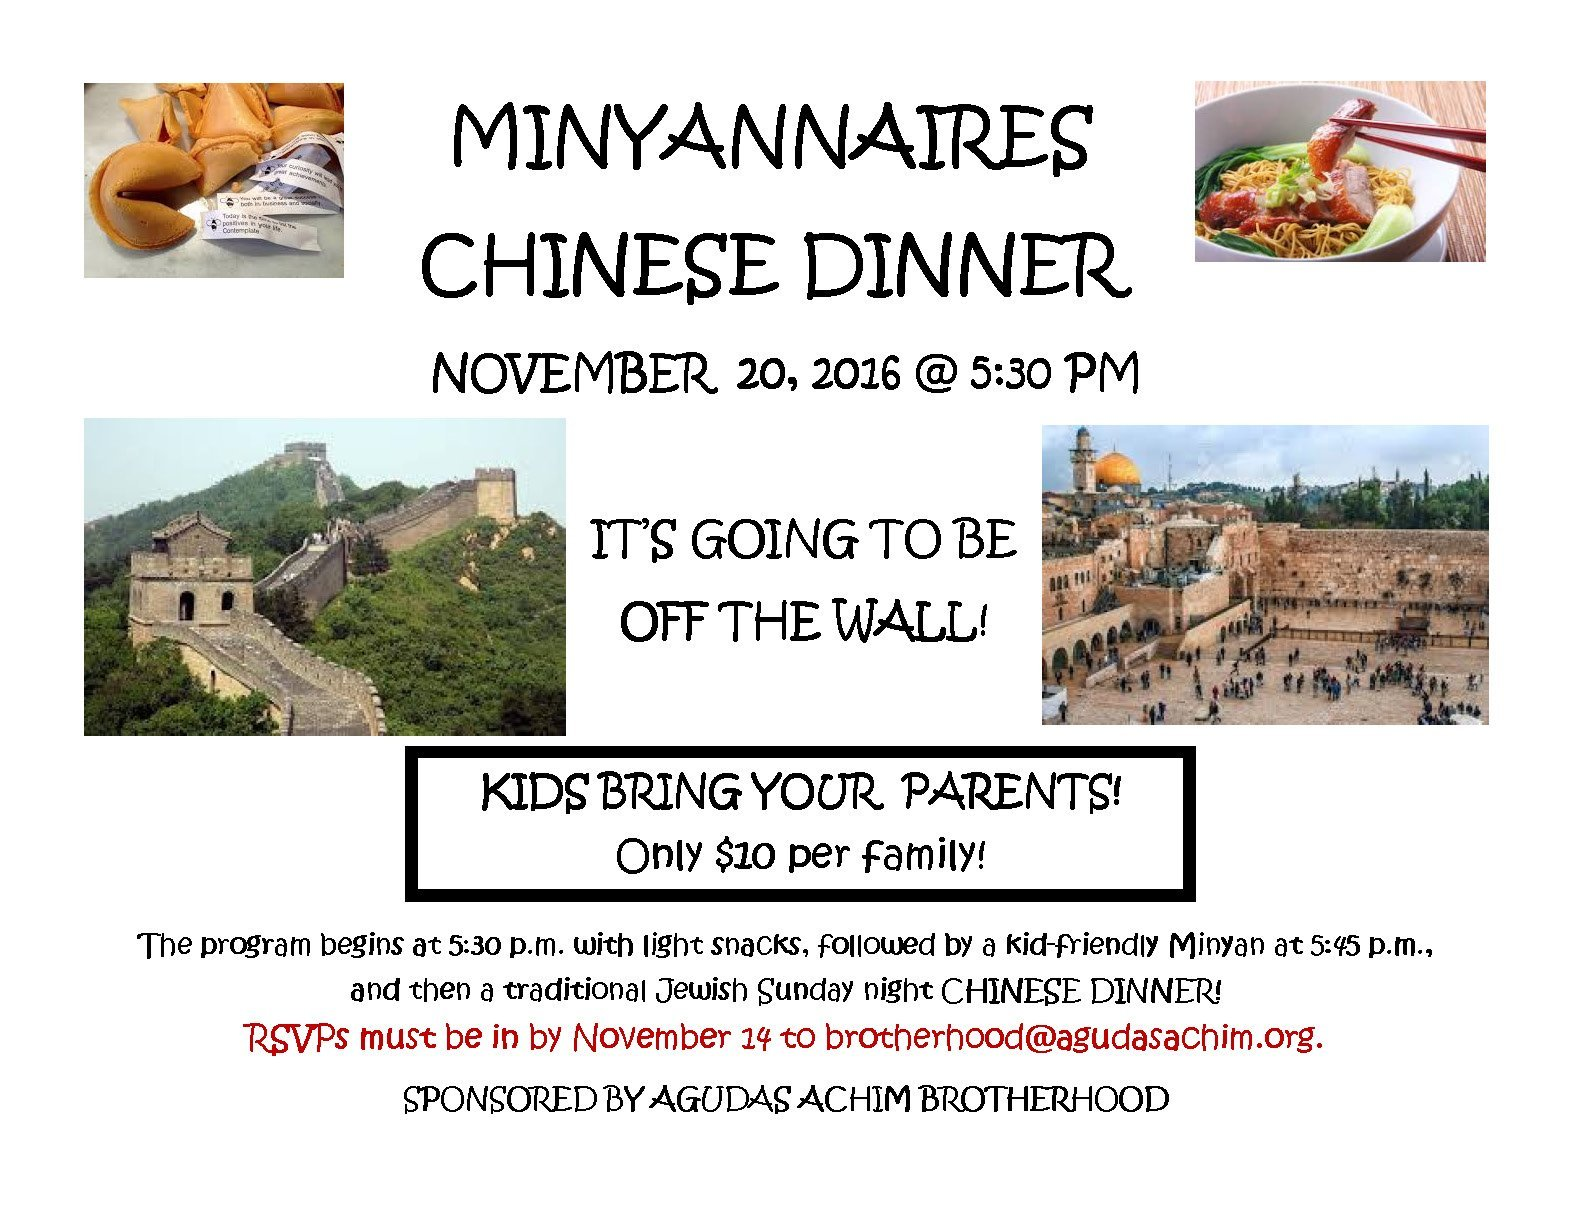 minyannaires-chinese-dinner-2016